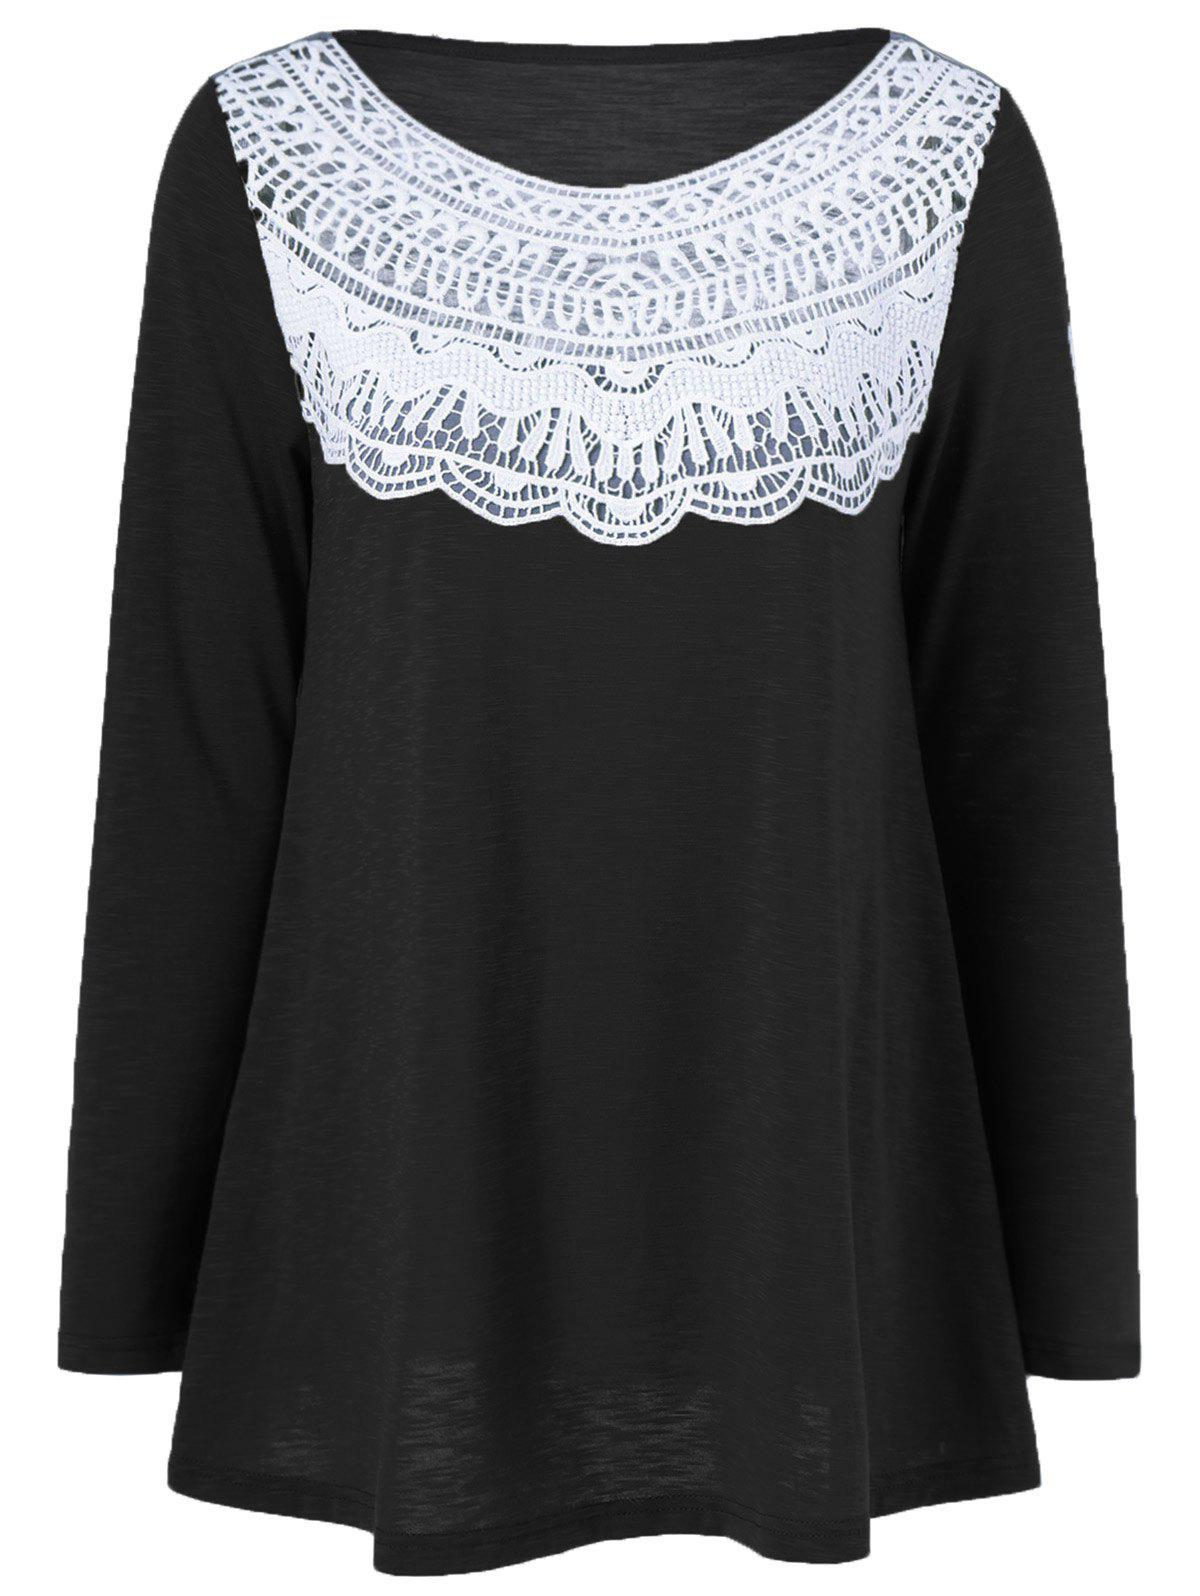 Lace Splicing Pleated T-Shirt - BLACK L